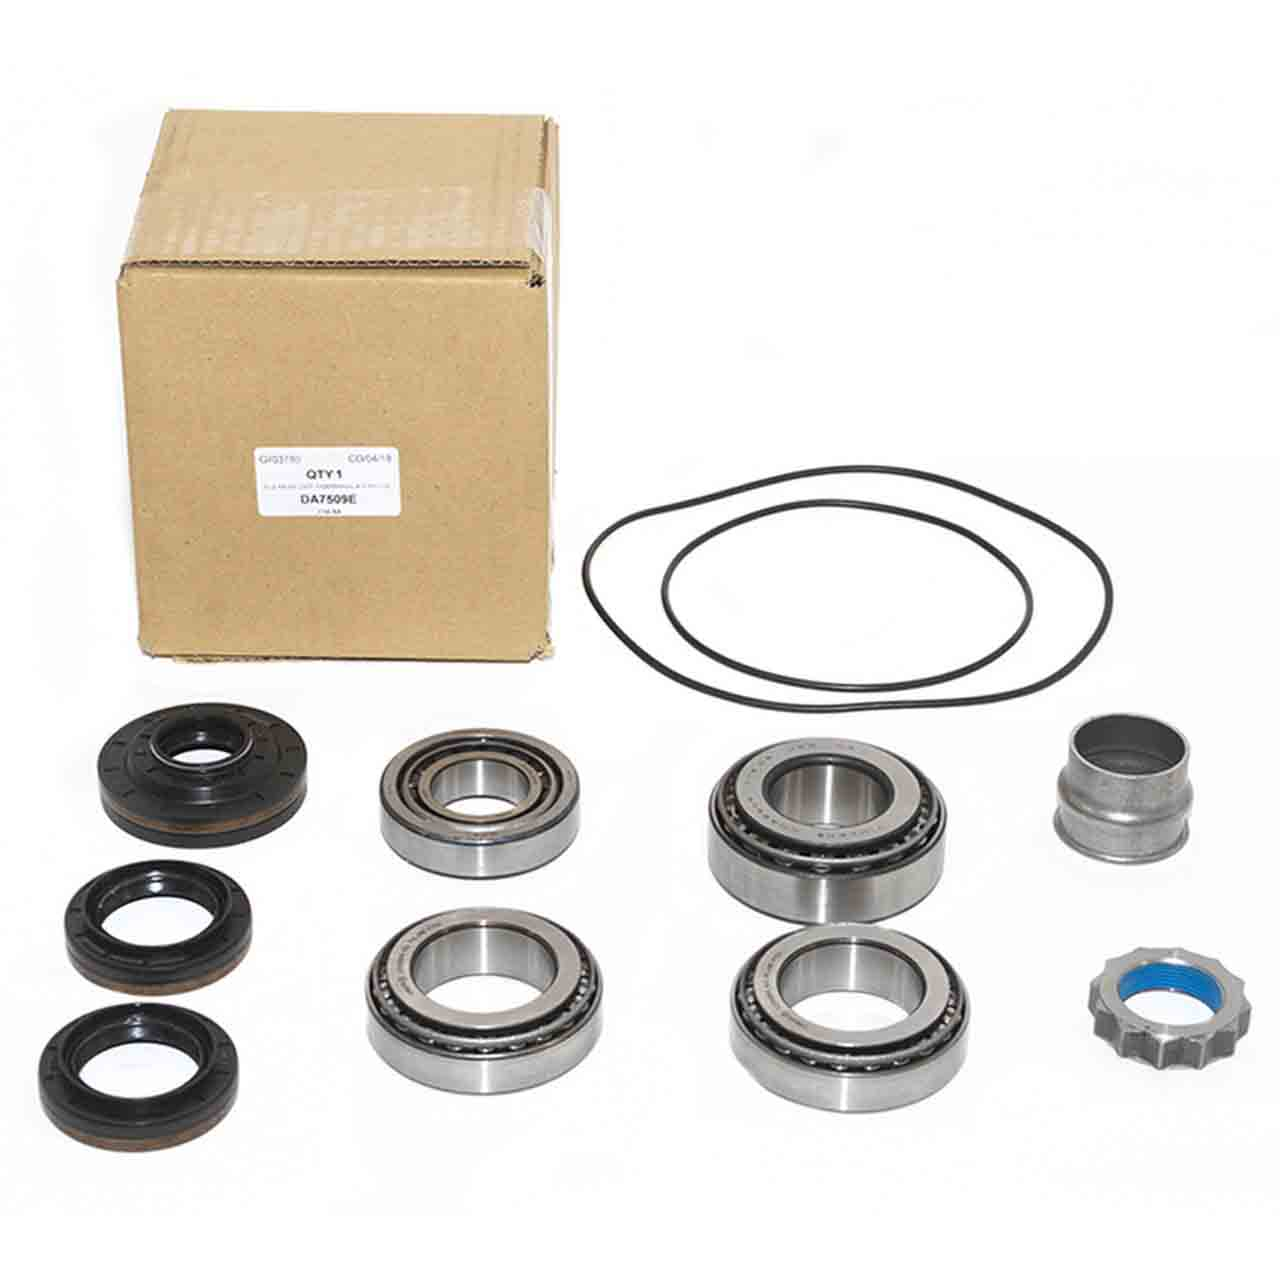 Freelander 2 Kit Revisione Del Cuscinetto Completo Del Differenziale Posteriore GR2-05539